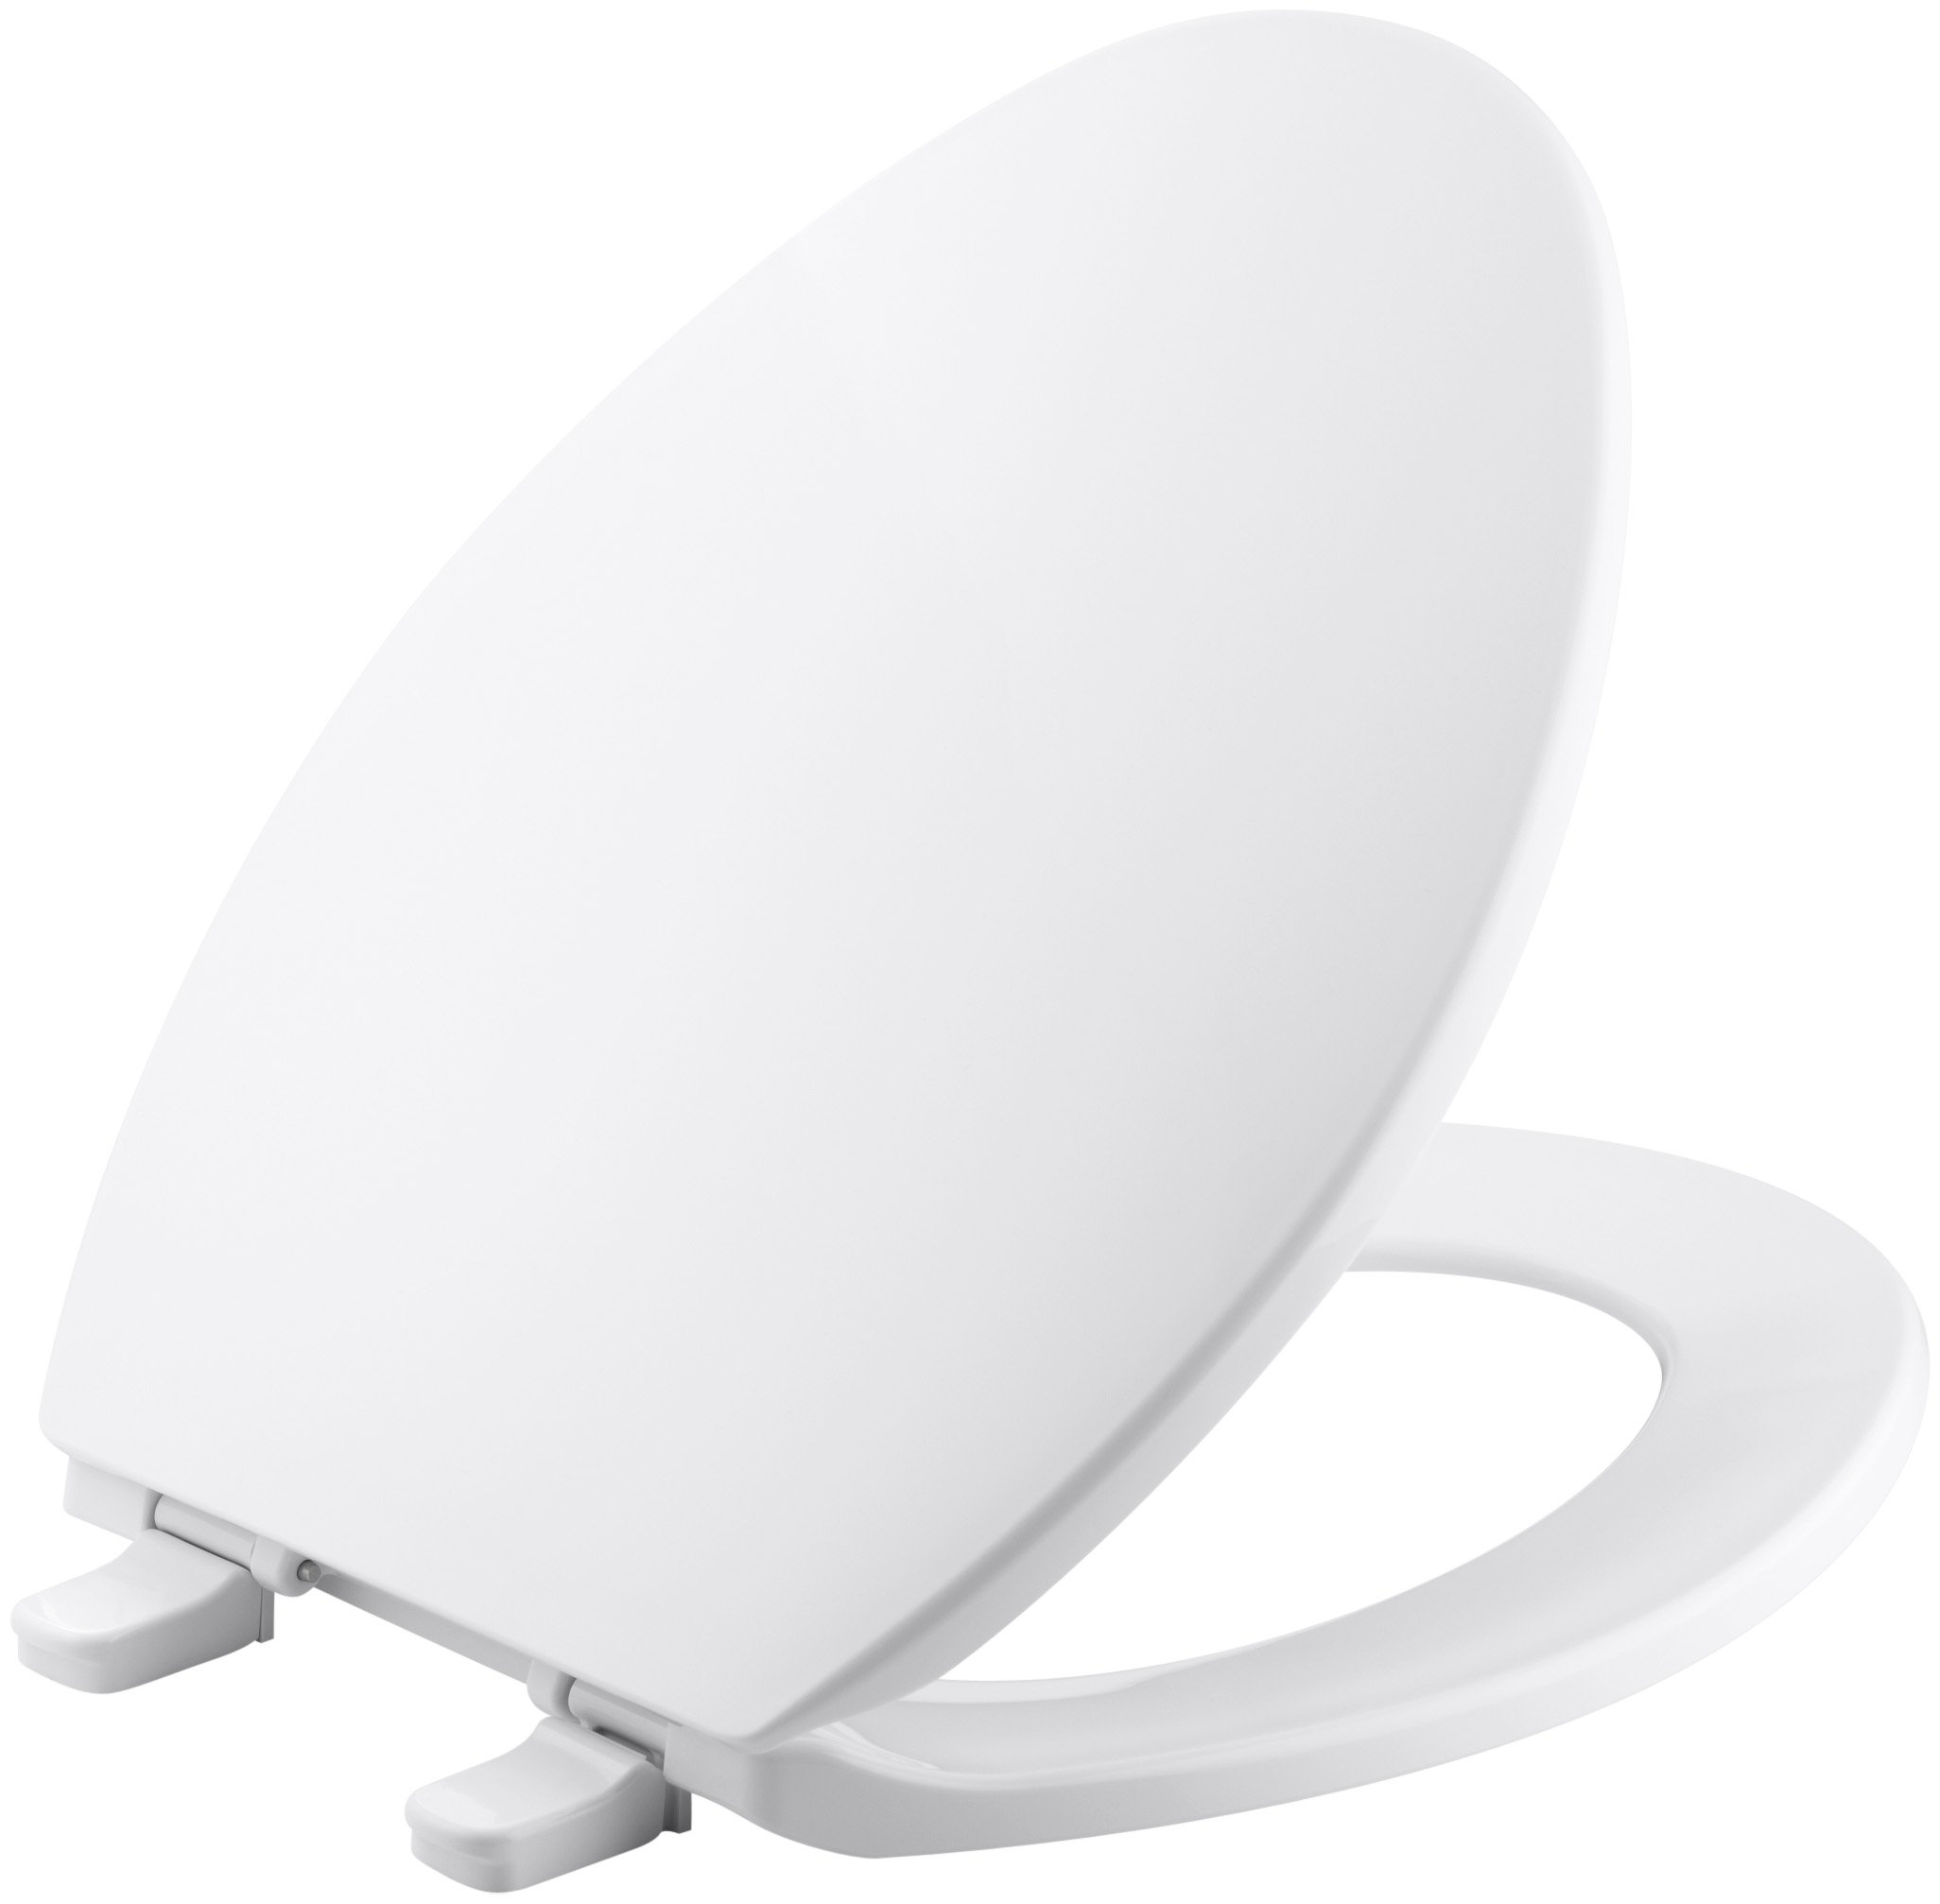 Kohler K-4774-0 Brevia Elongated White Toilet Seatwith Quick-Release Hinges And Quick-Attach Hardware For Easy Clean by Kohler